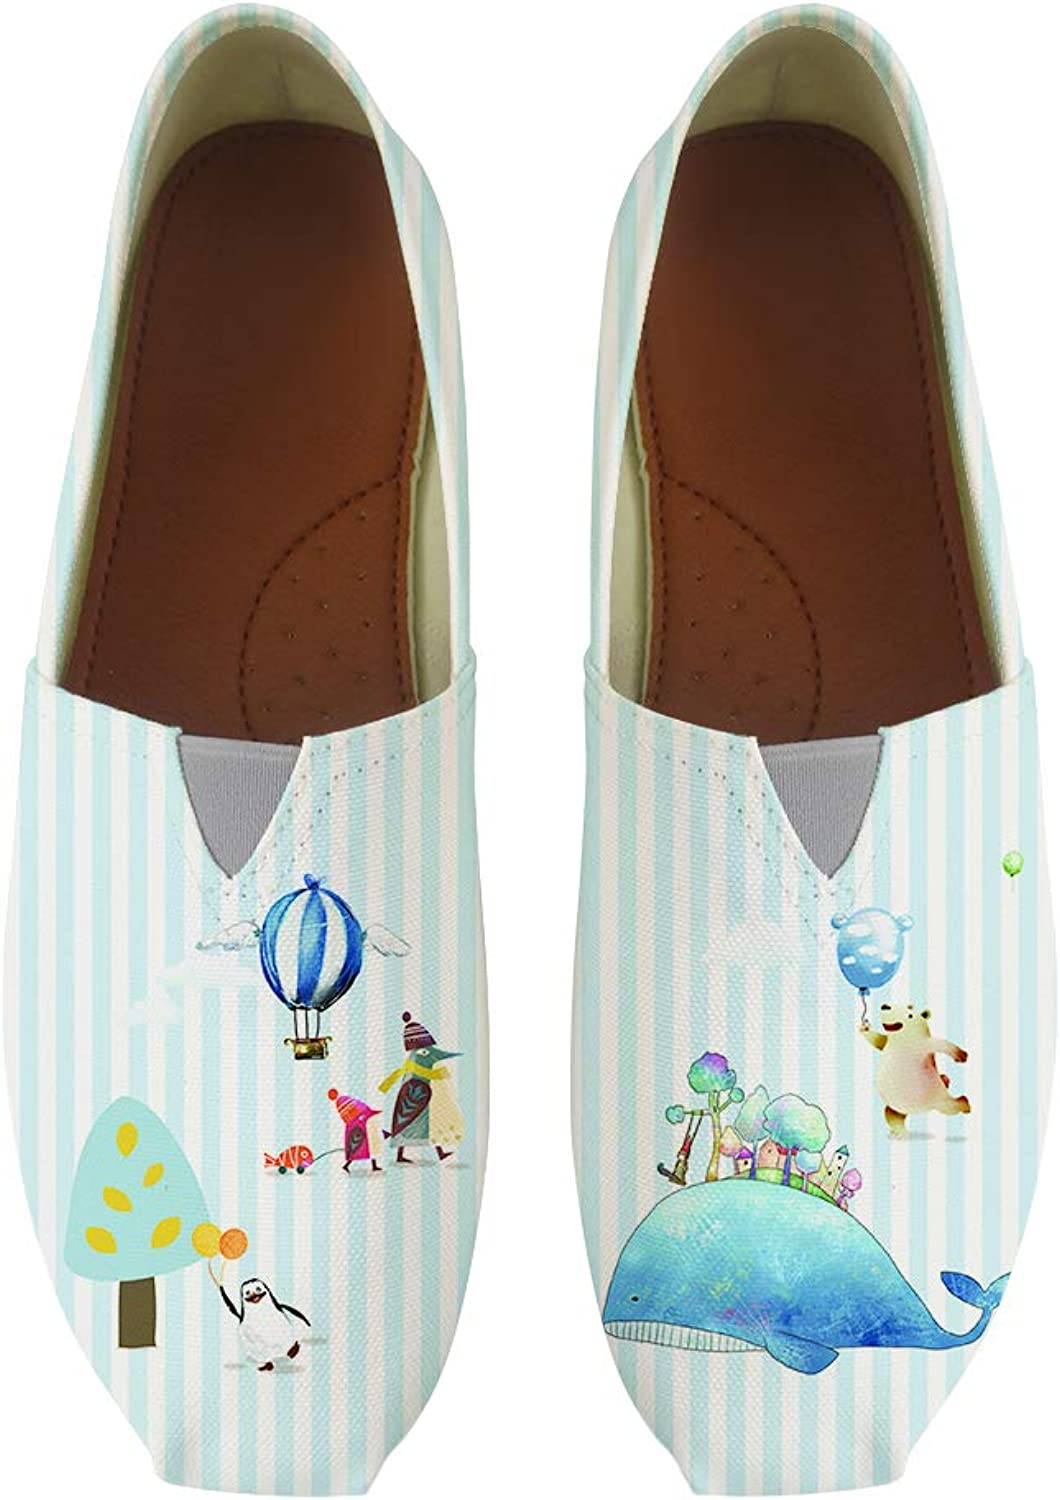 Owaheson Classic Canvas Slip-On Lightweight Driving shoes Soft Penny Loafers Men Women Happy Polar Bear Whale Vacation Penguin Mum and Baby